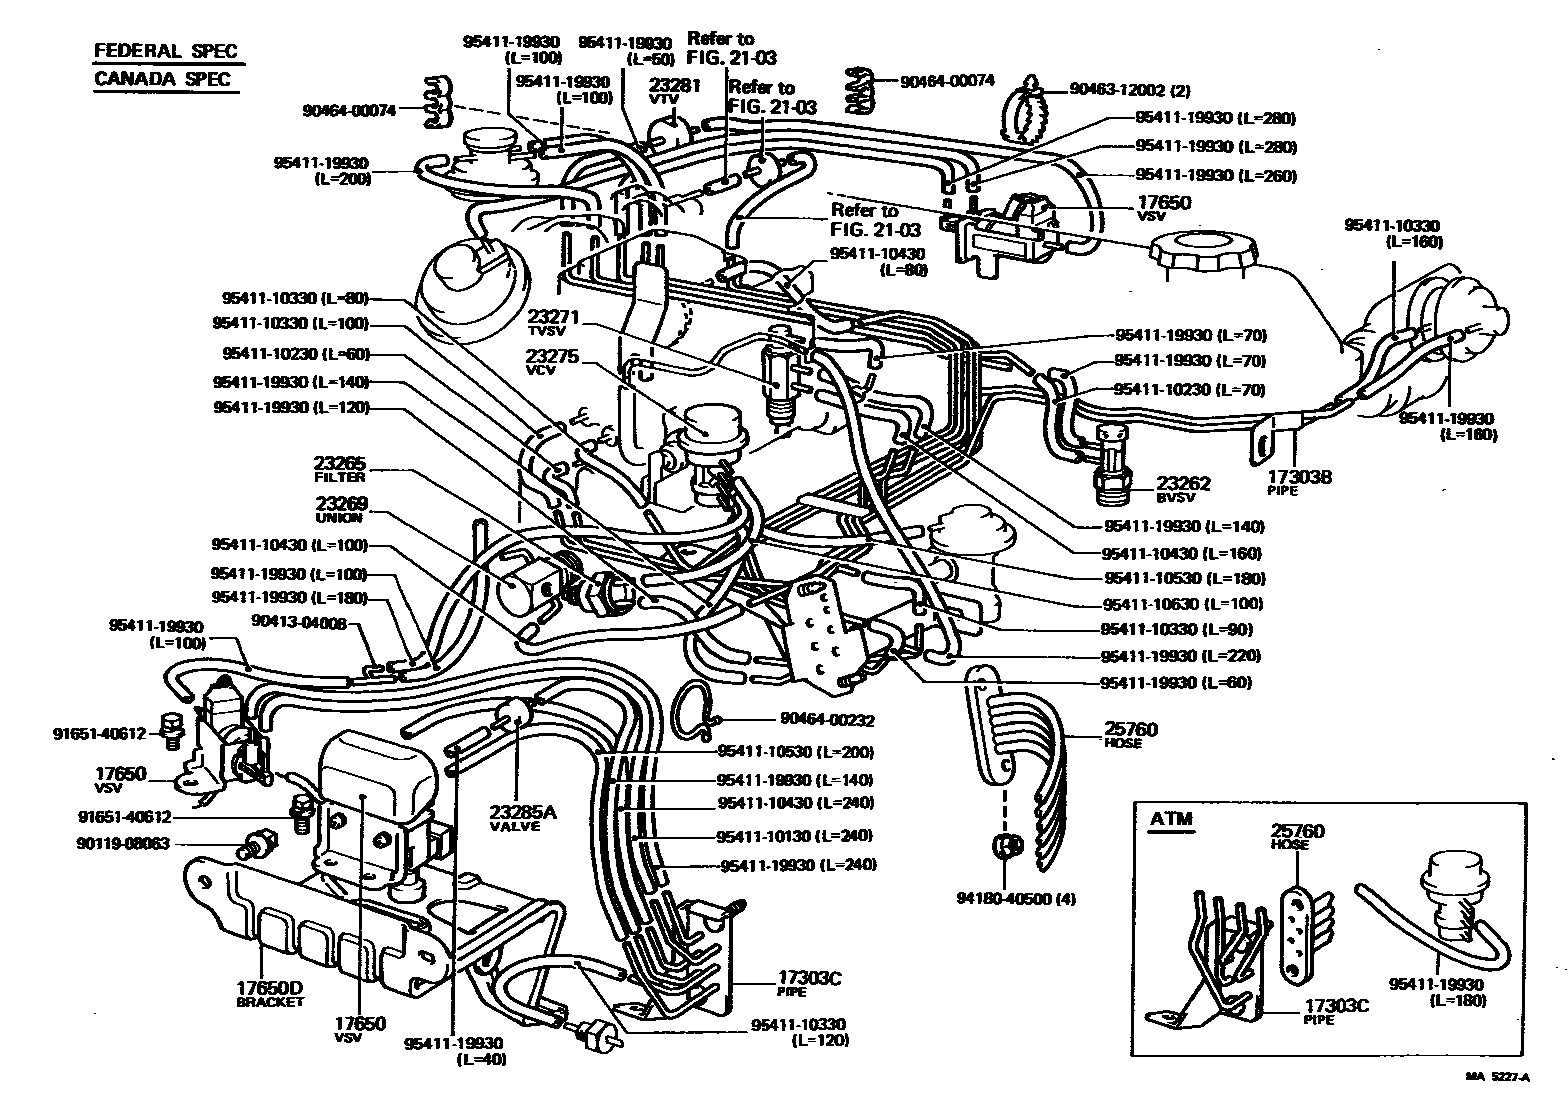 1999 toyota 4runner wiring diagram old telephone 2004 camry engine diagrams